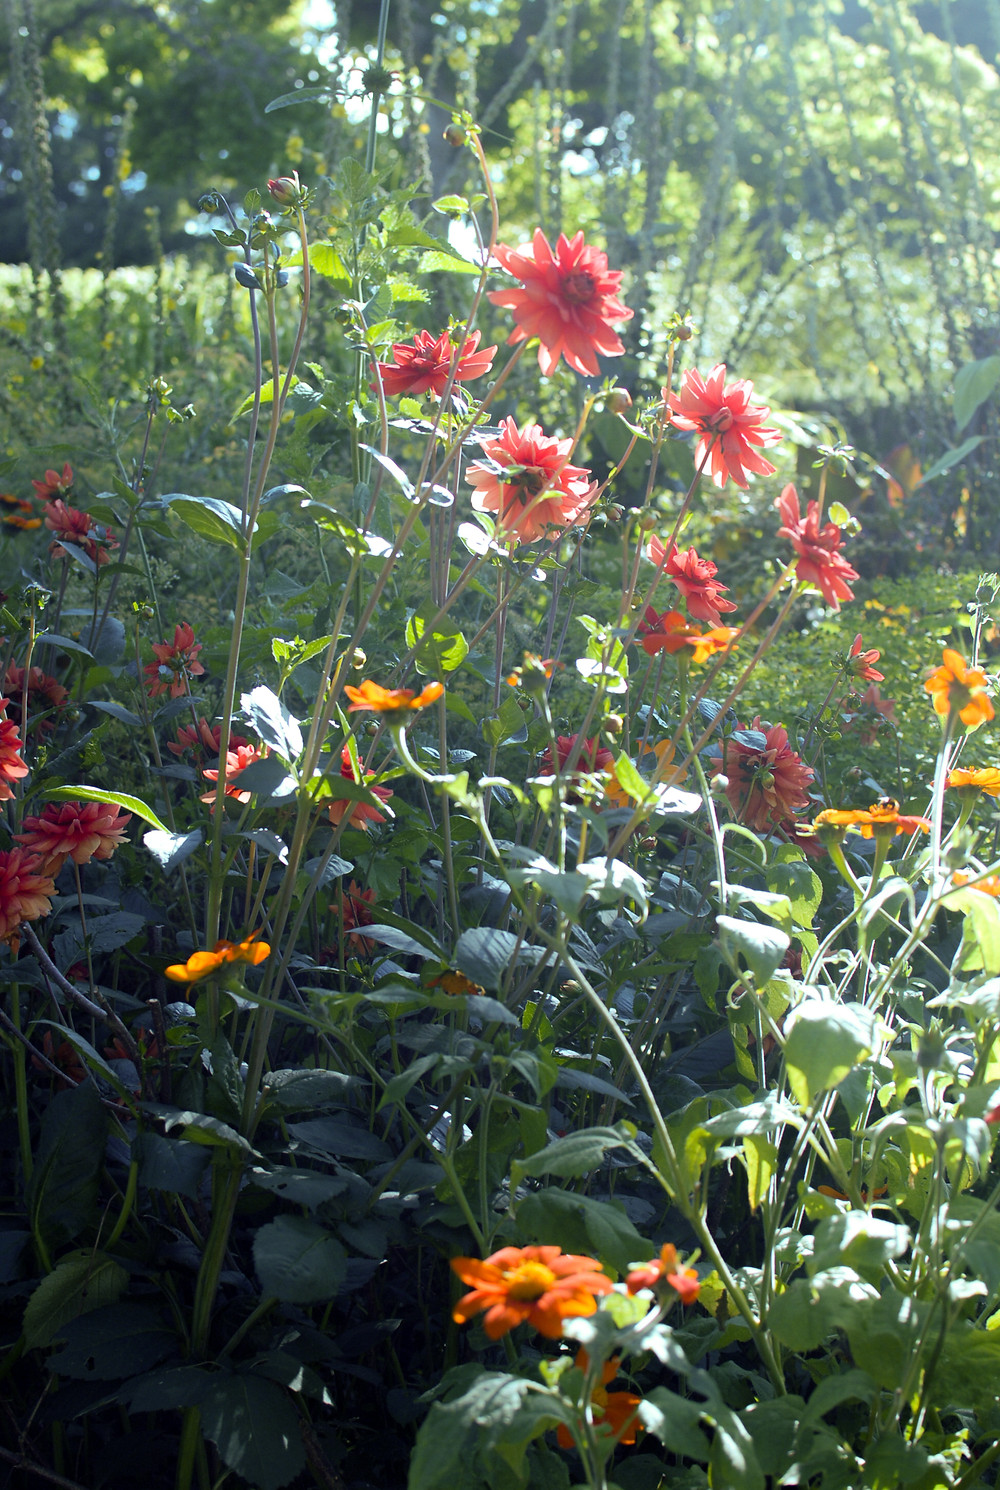 Dahlias in the South Cottage Garden at Sissinghurst by Georgina Cook